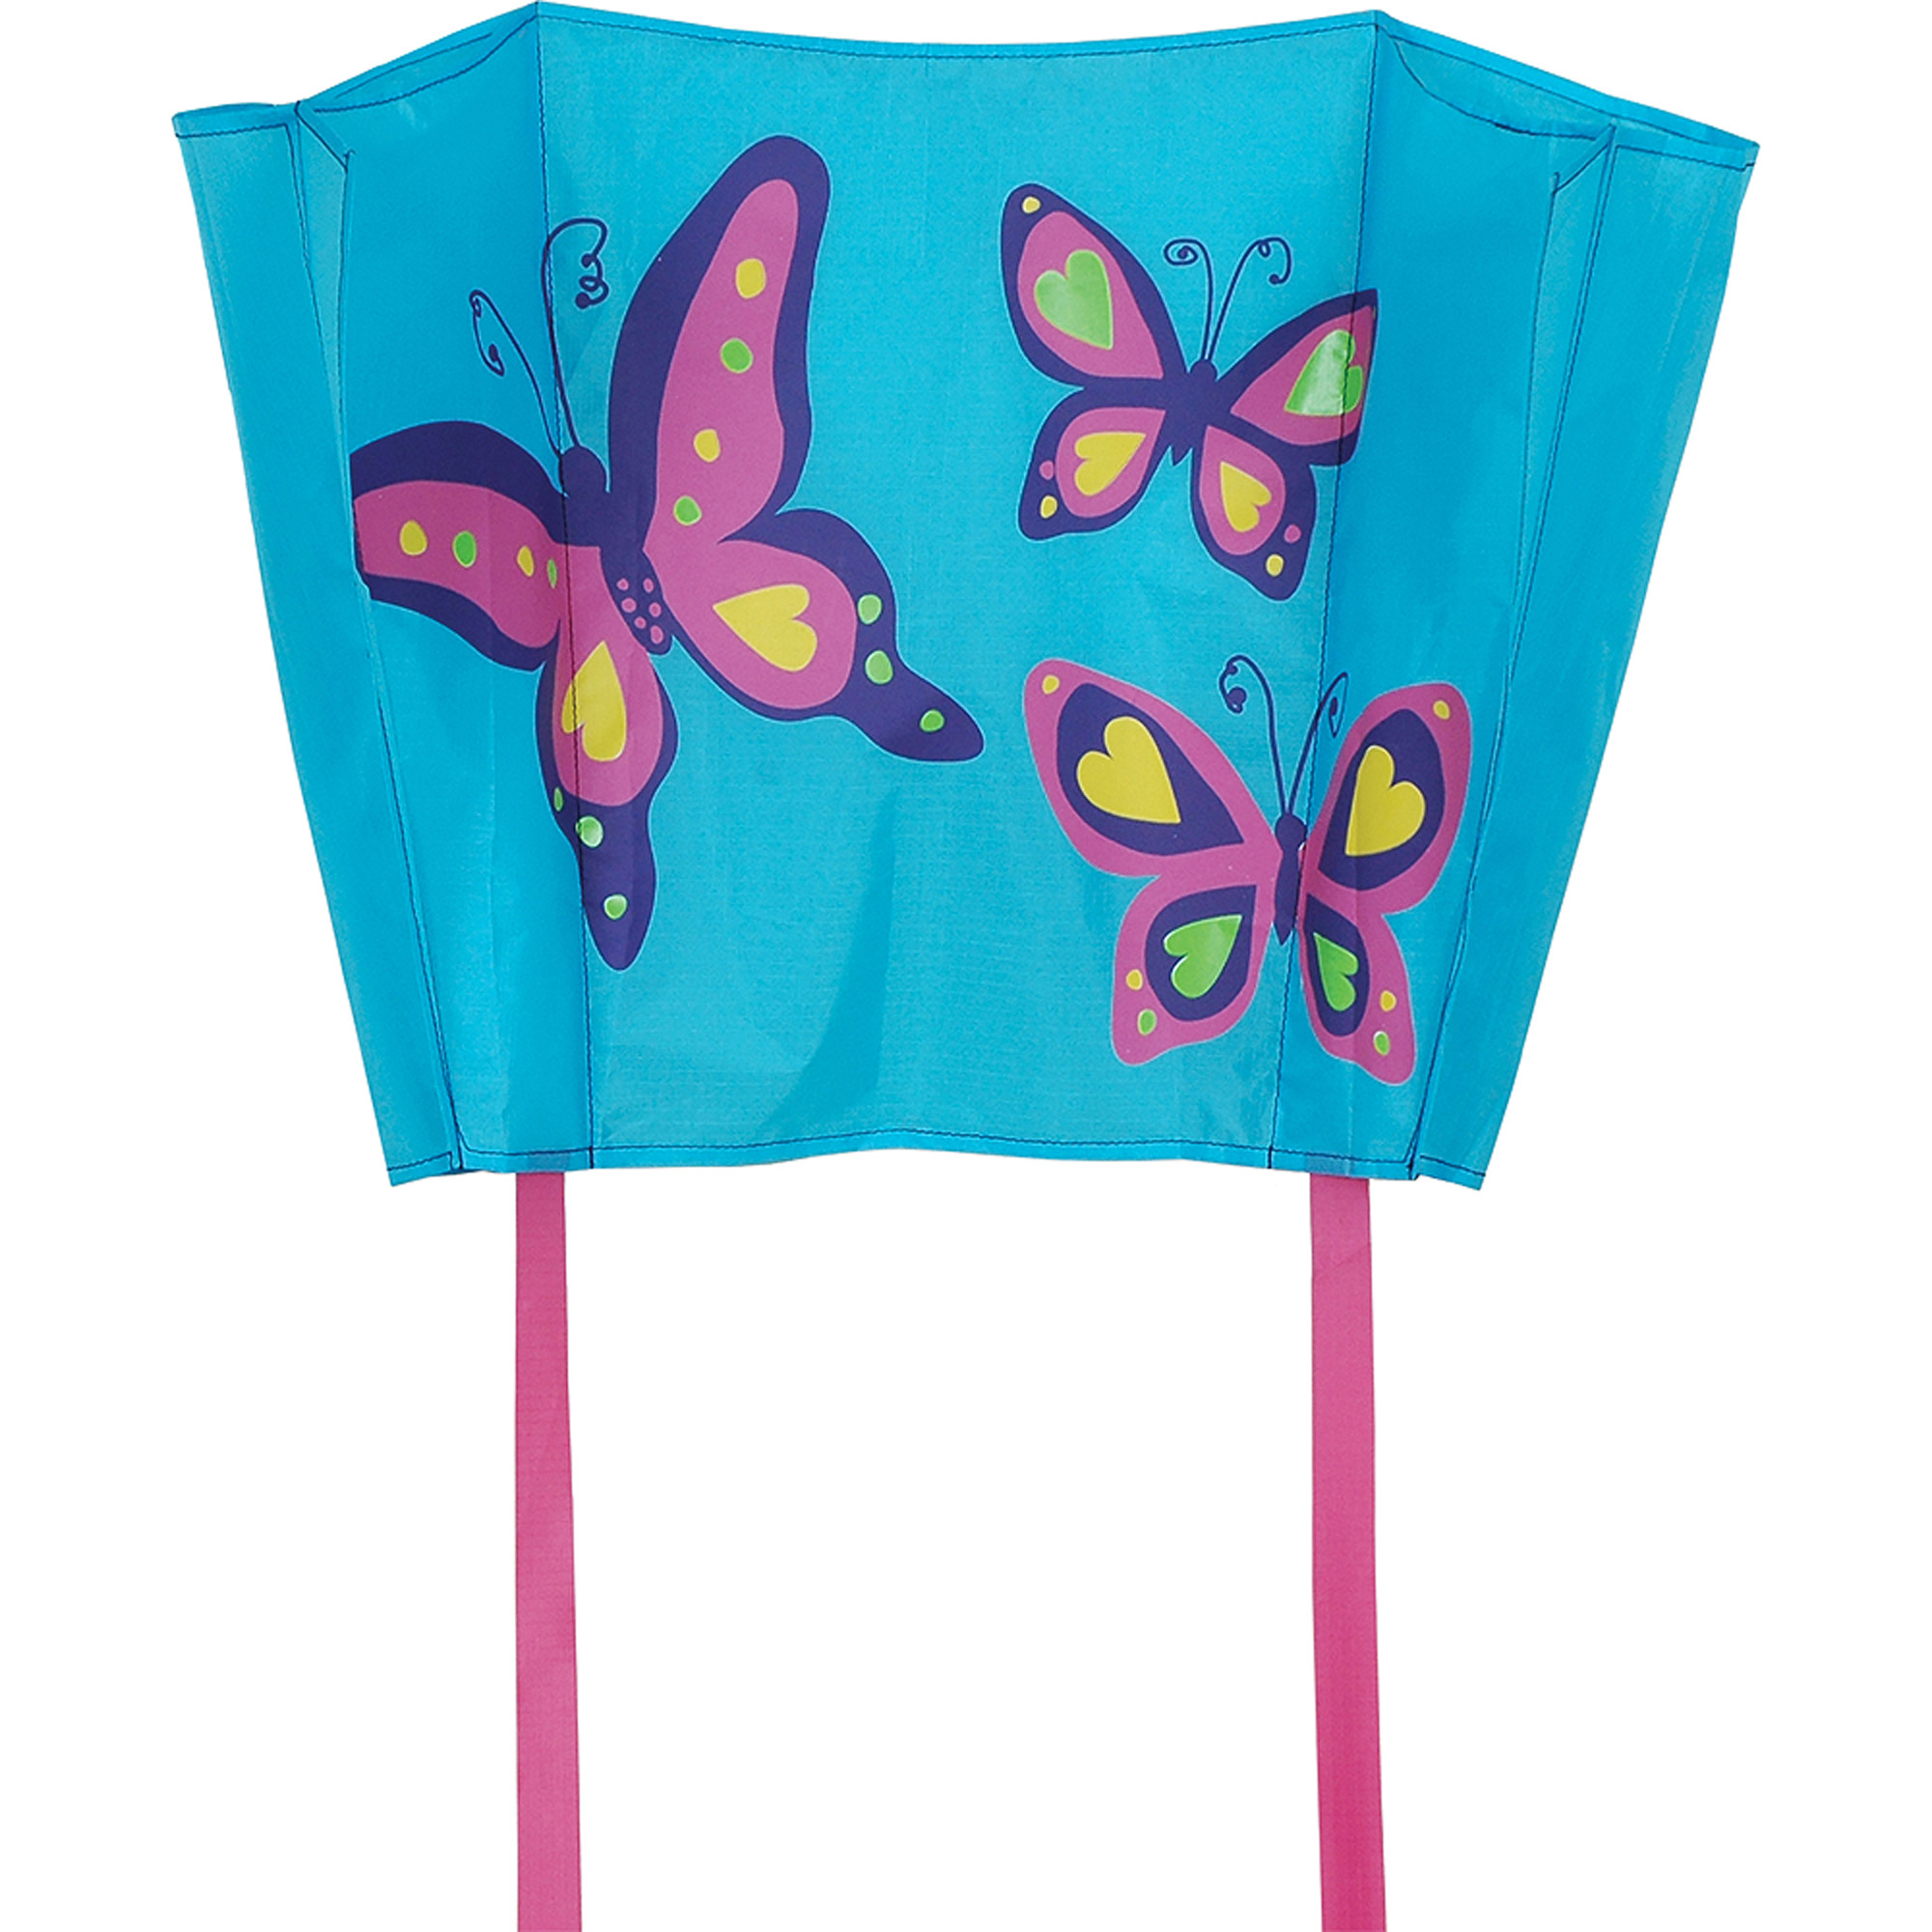 Premier Designs Big Back Pack Sled Kite, Butterfly